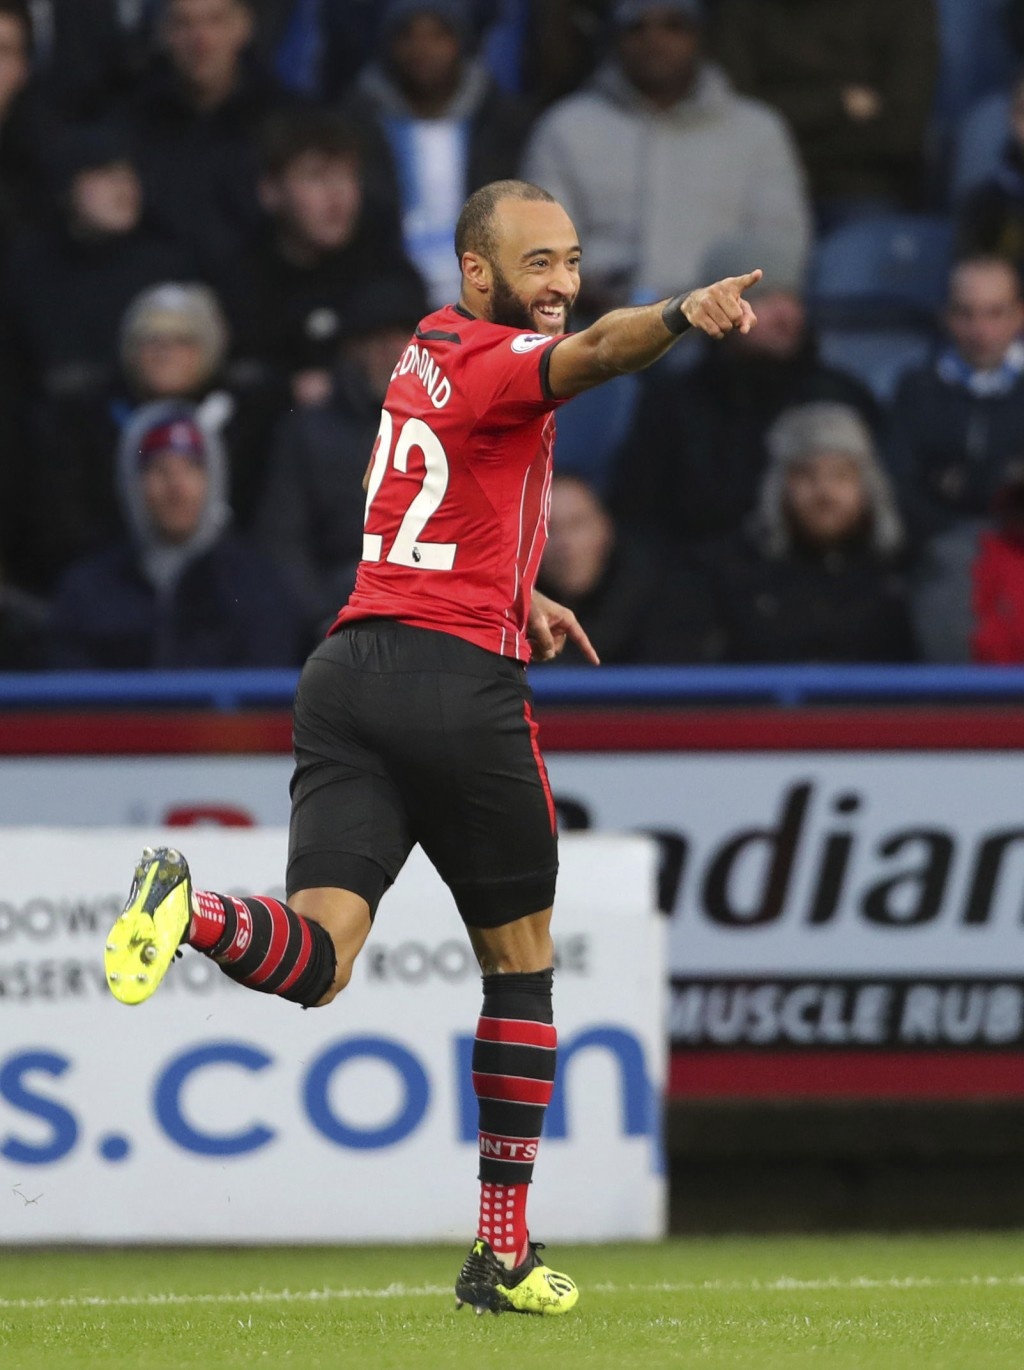 Southampton's Nathan Redmond celebrates scoring his side's first goal of the game during the English Premier League soccer match between Huddersfield